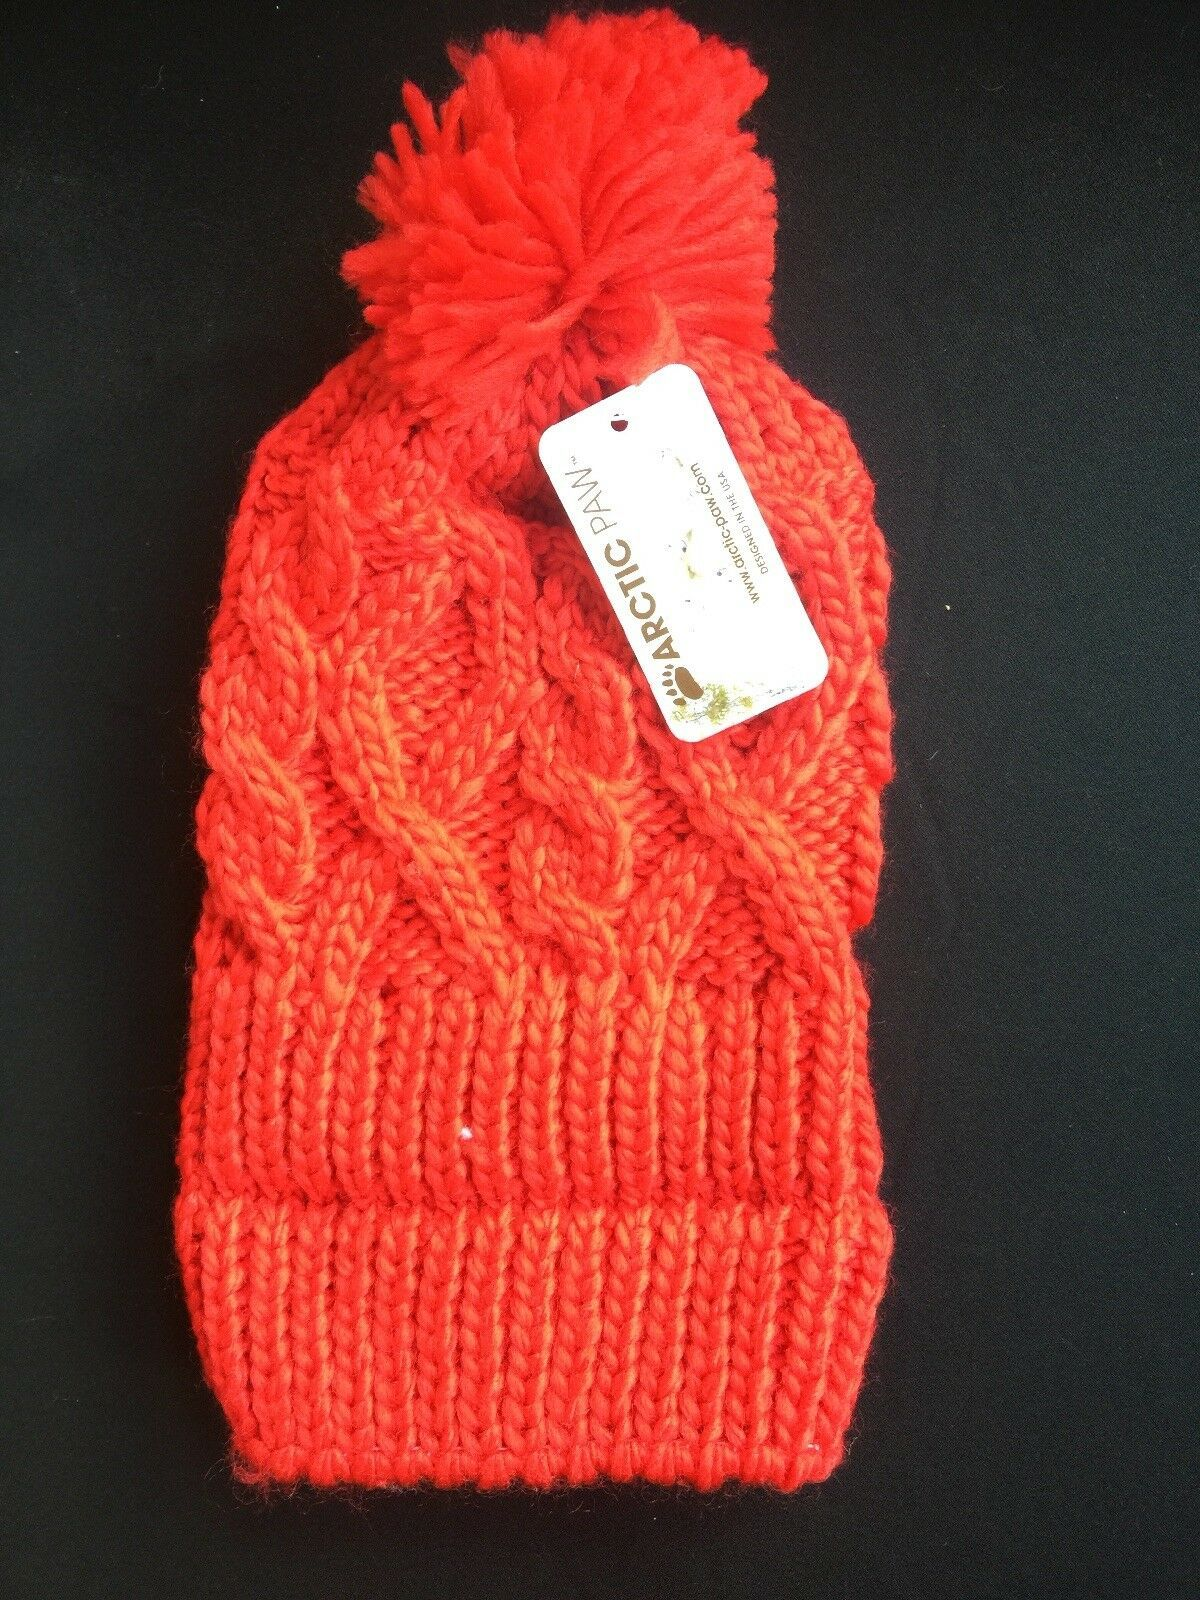 ARCTIC Paw Chunky Cable Knit Beanie with Yarn Pompom - Red - Kids